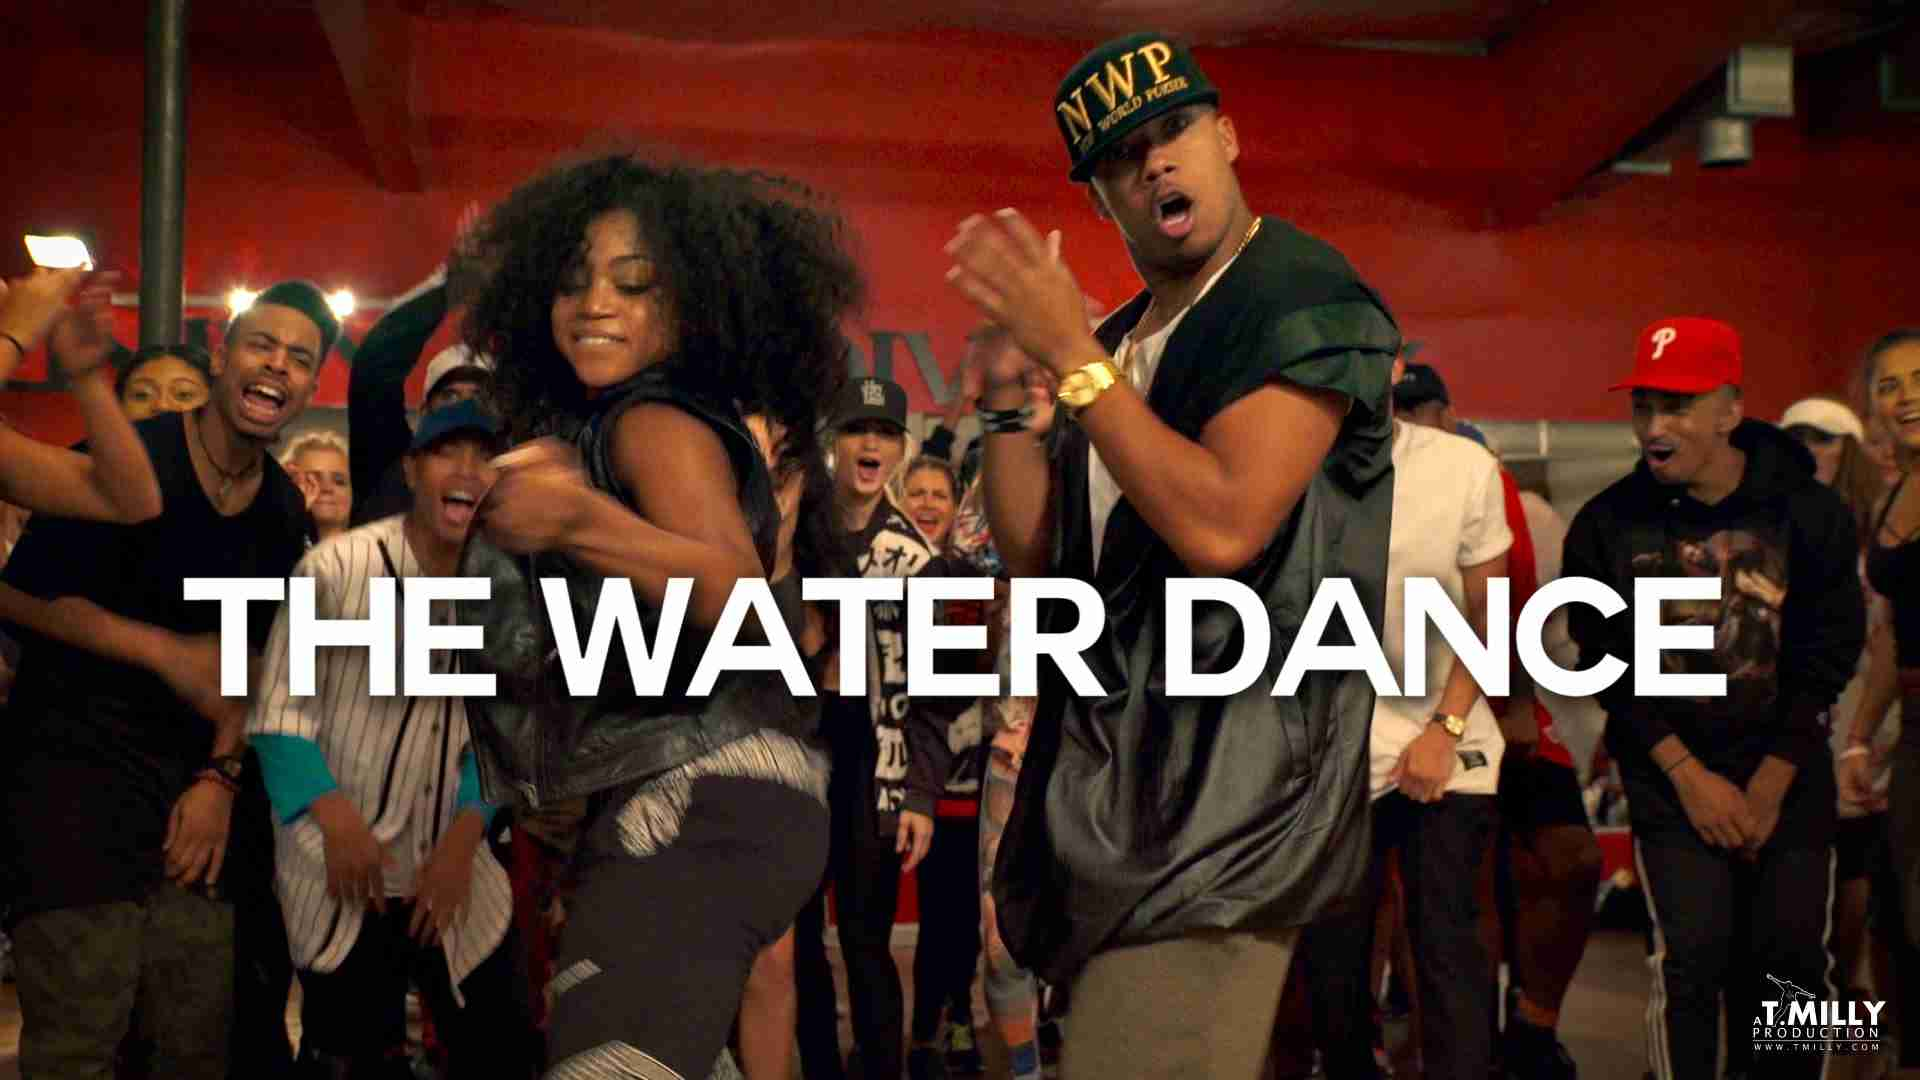 Chris Porter ft Pitbull - The Water Dance | Choreography by @_TriciaMiranda - Filmed by @TimMilgram - YouTube